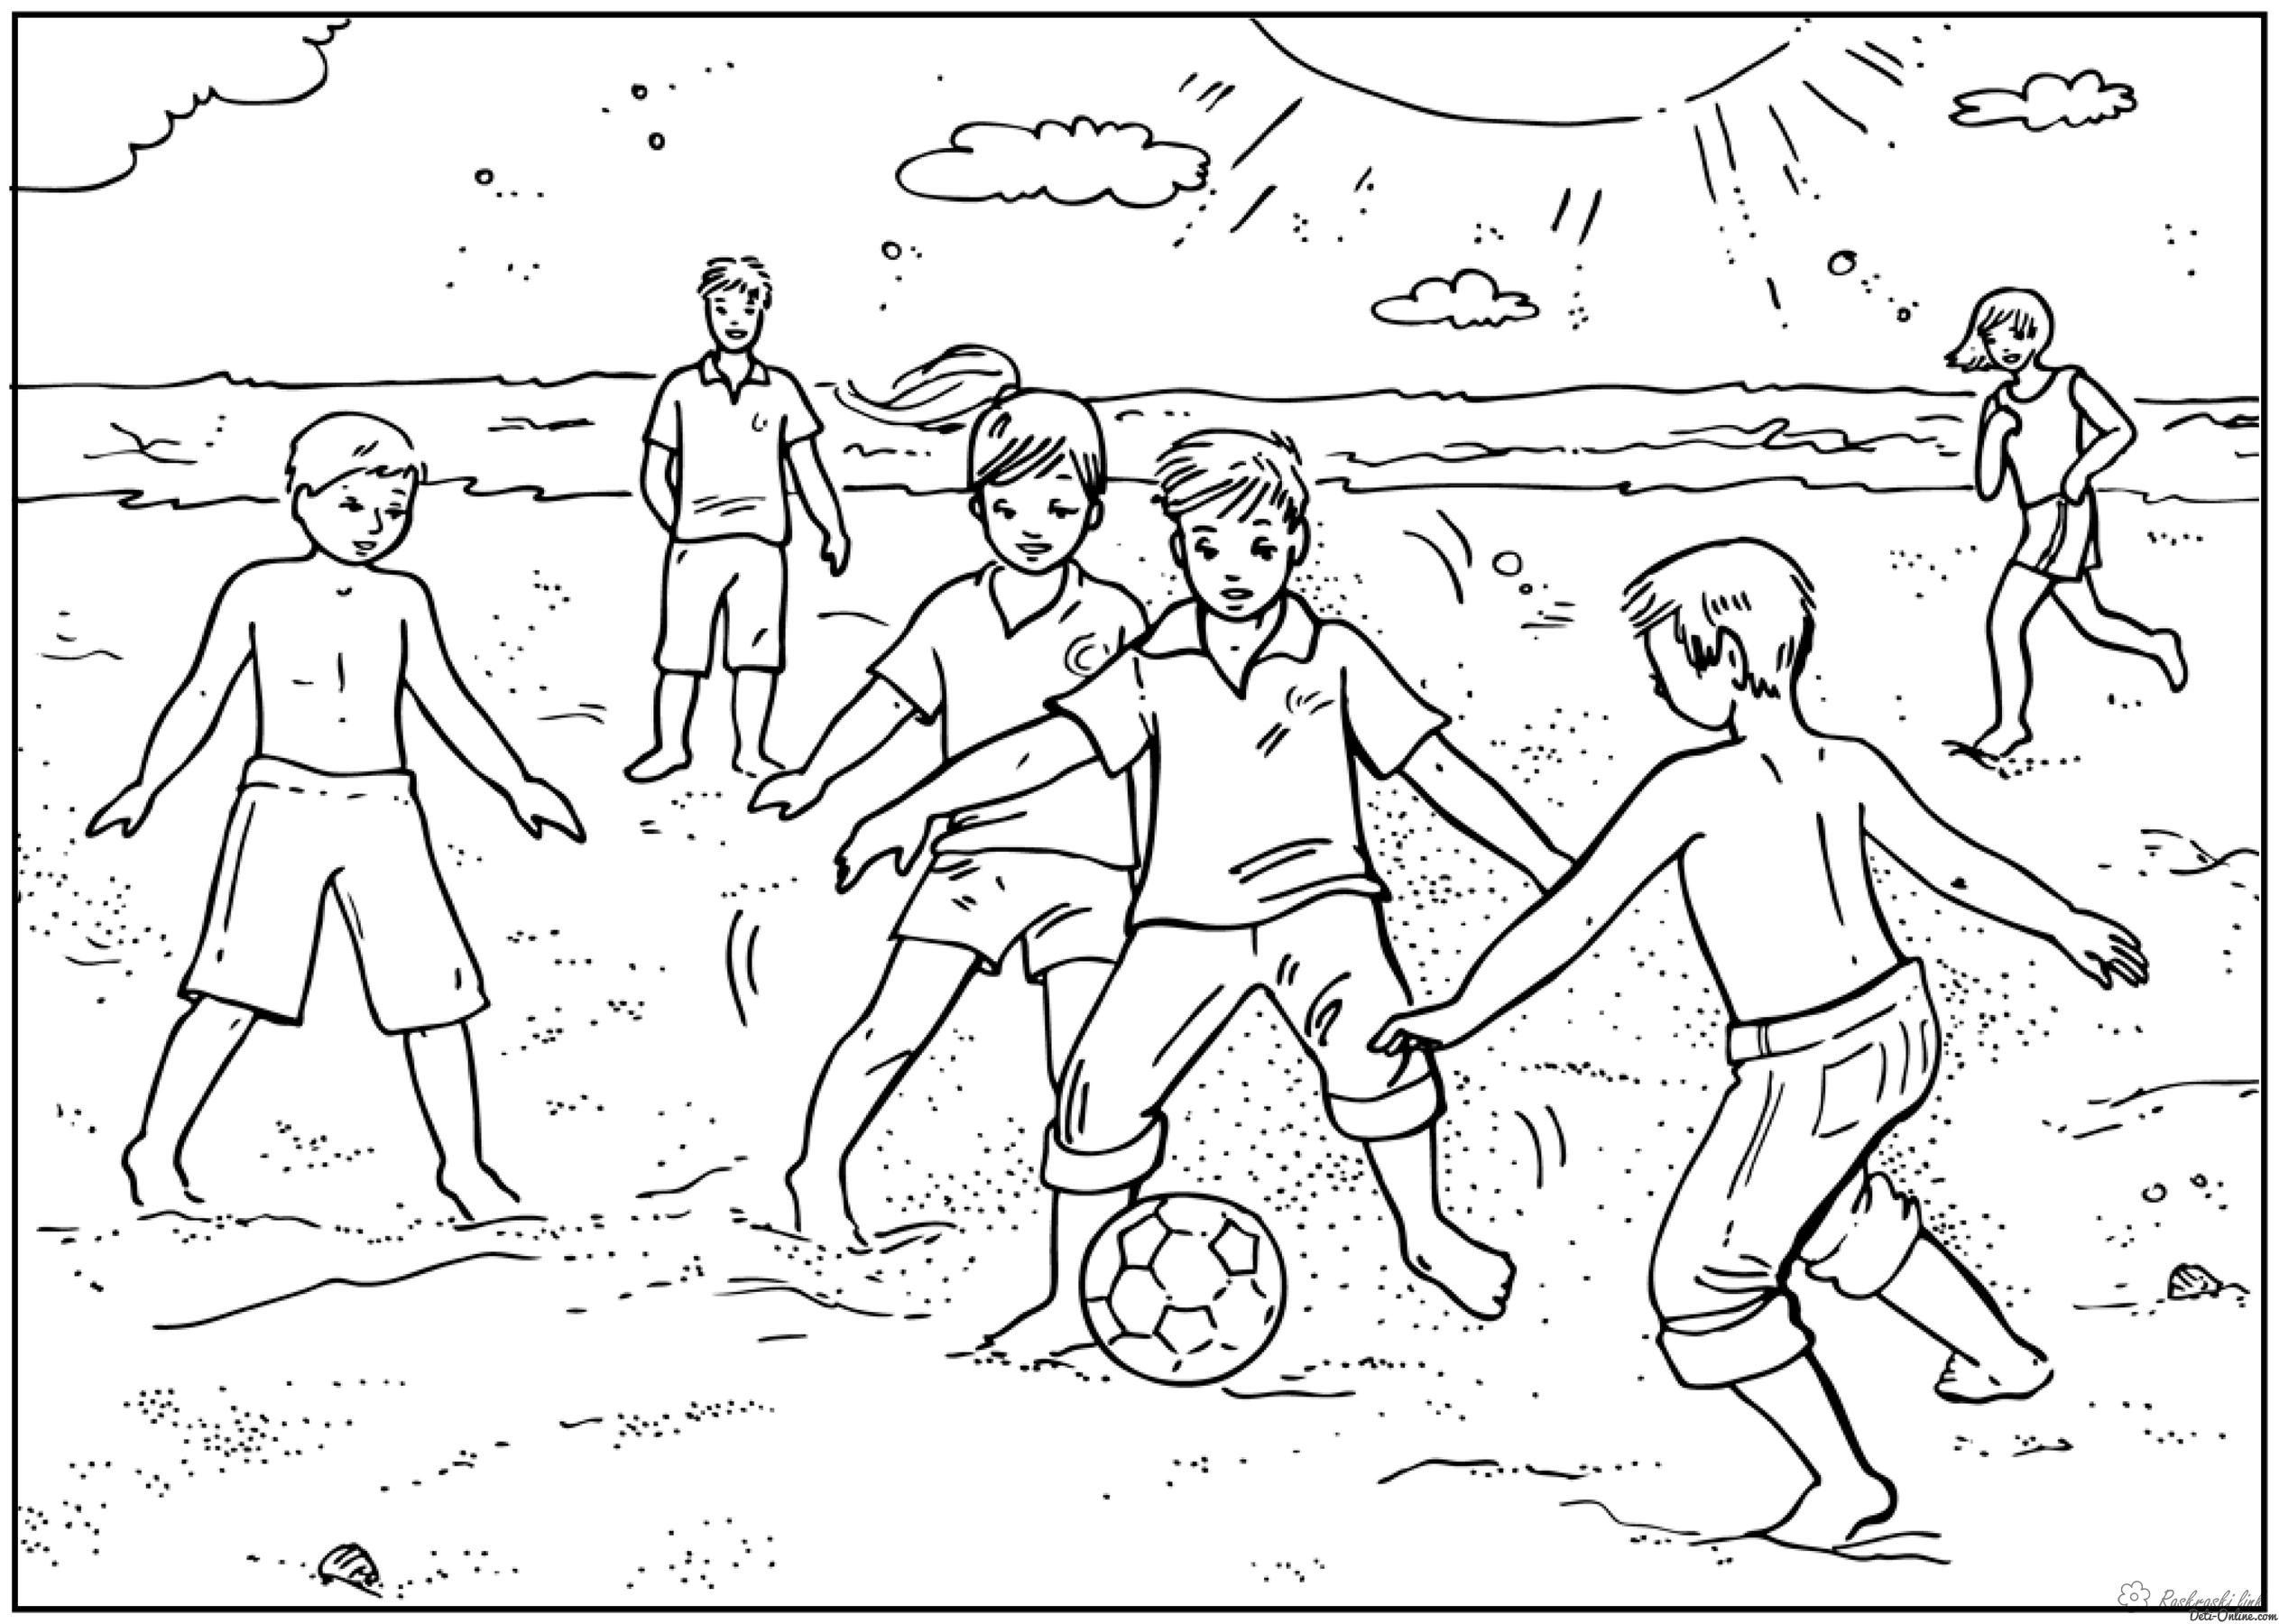 Coloring Football Football on the sand coloring pages, sports, Olympics